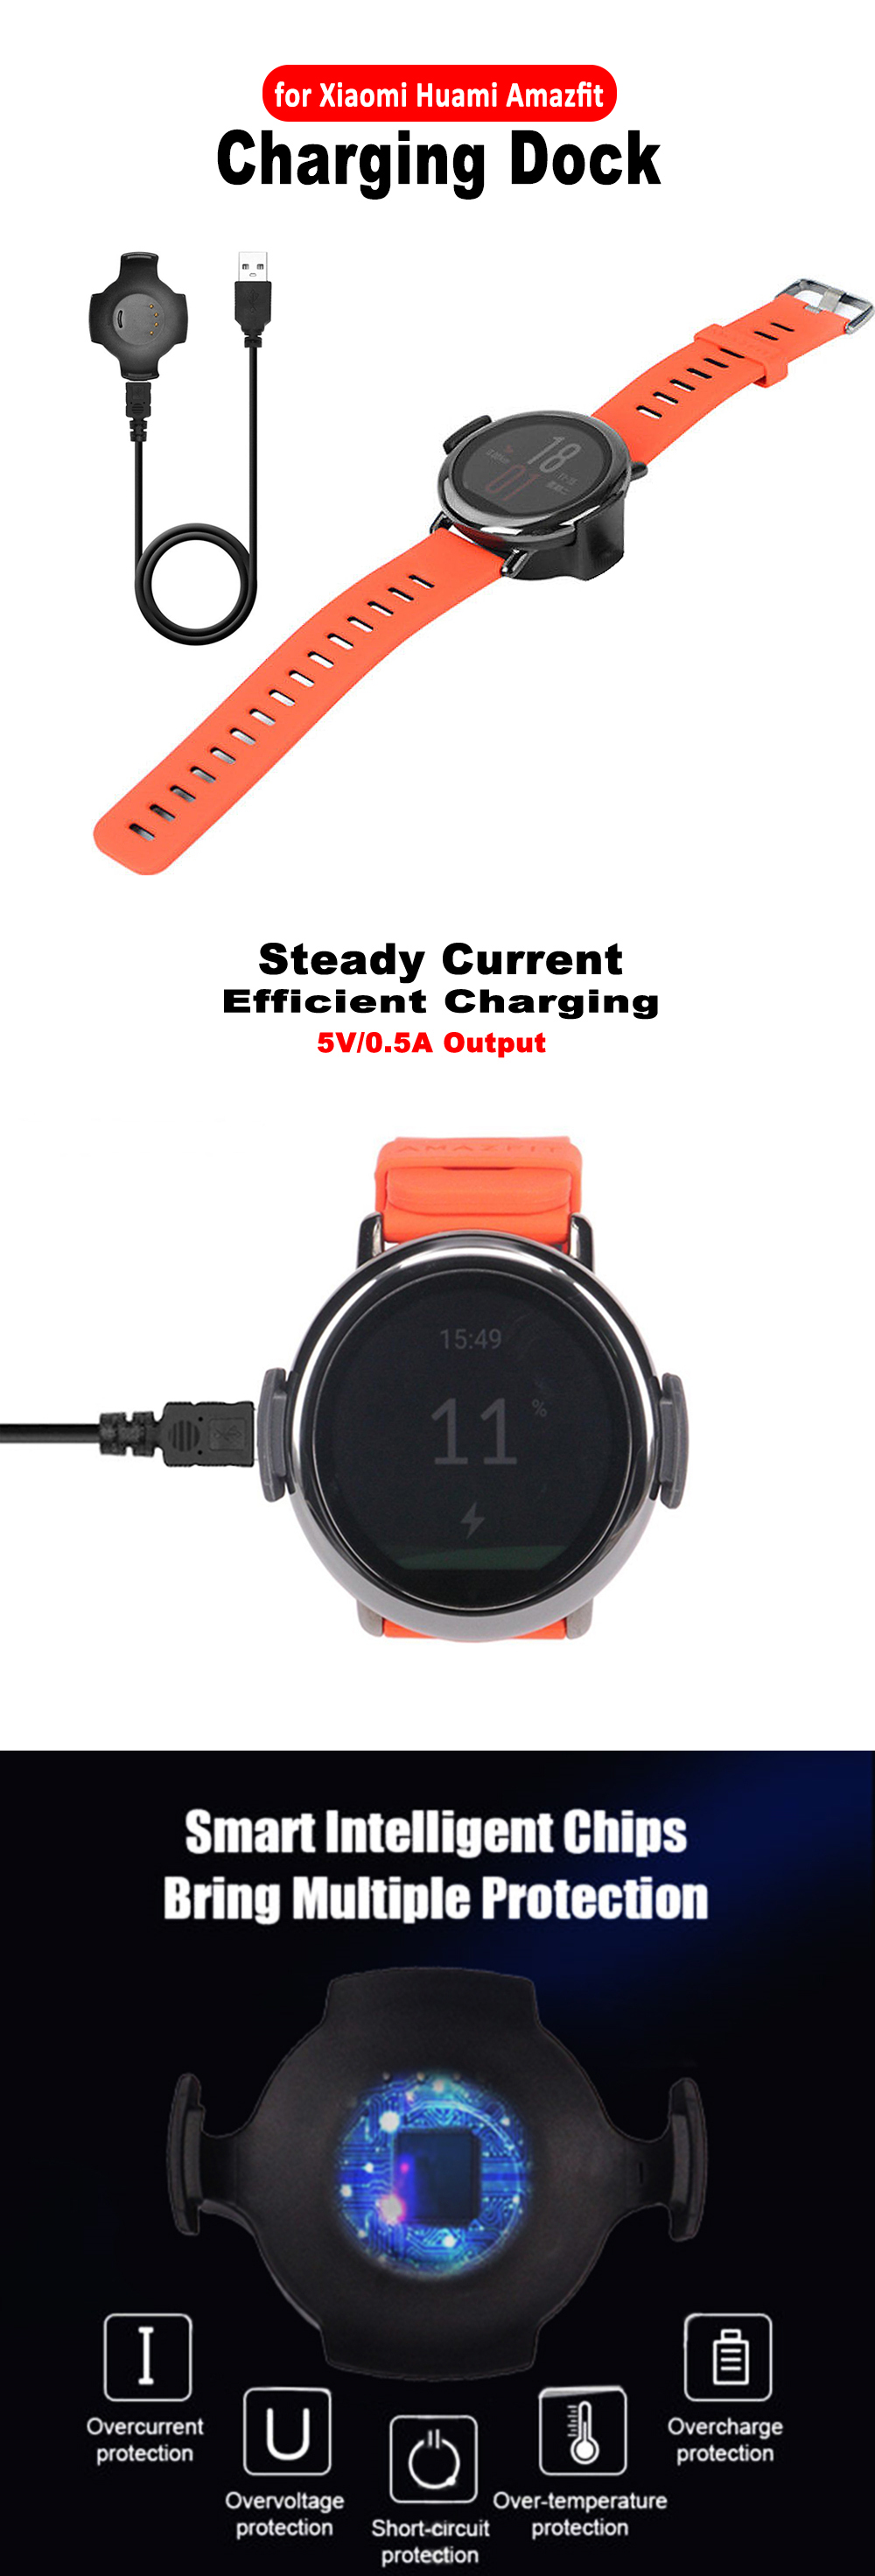 USB Fast Charger Charging Dock For  Xiaomi Huami Amazfit Smartwatch- Black